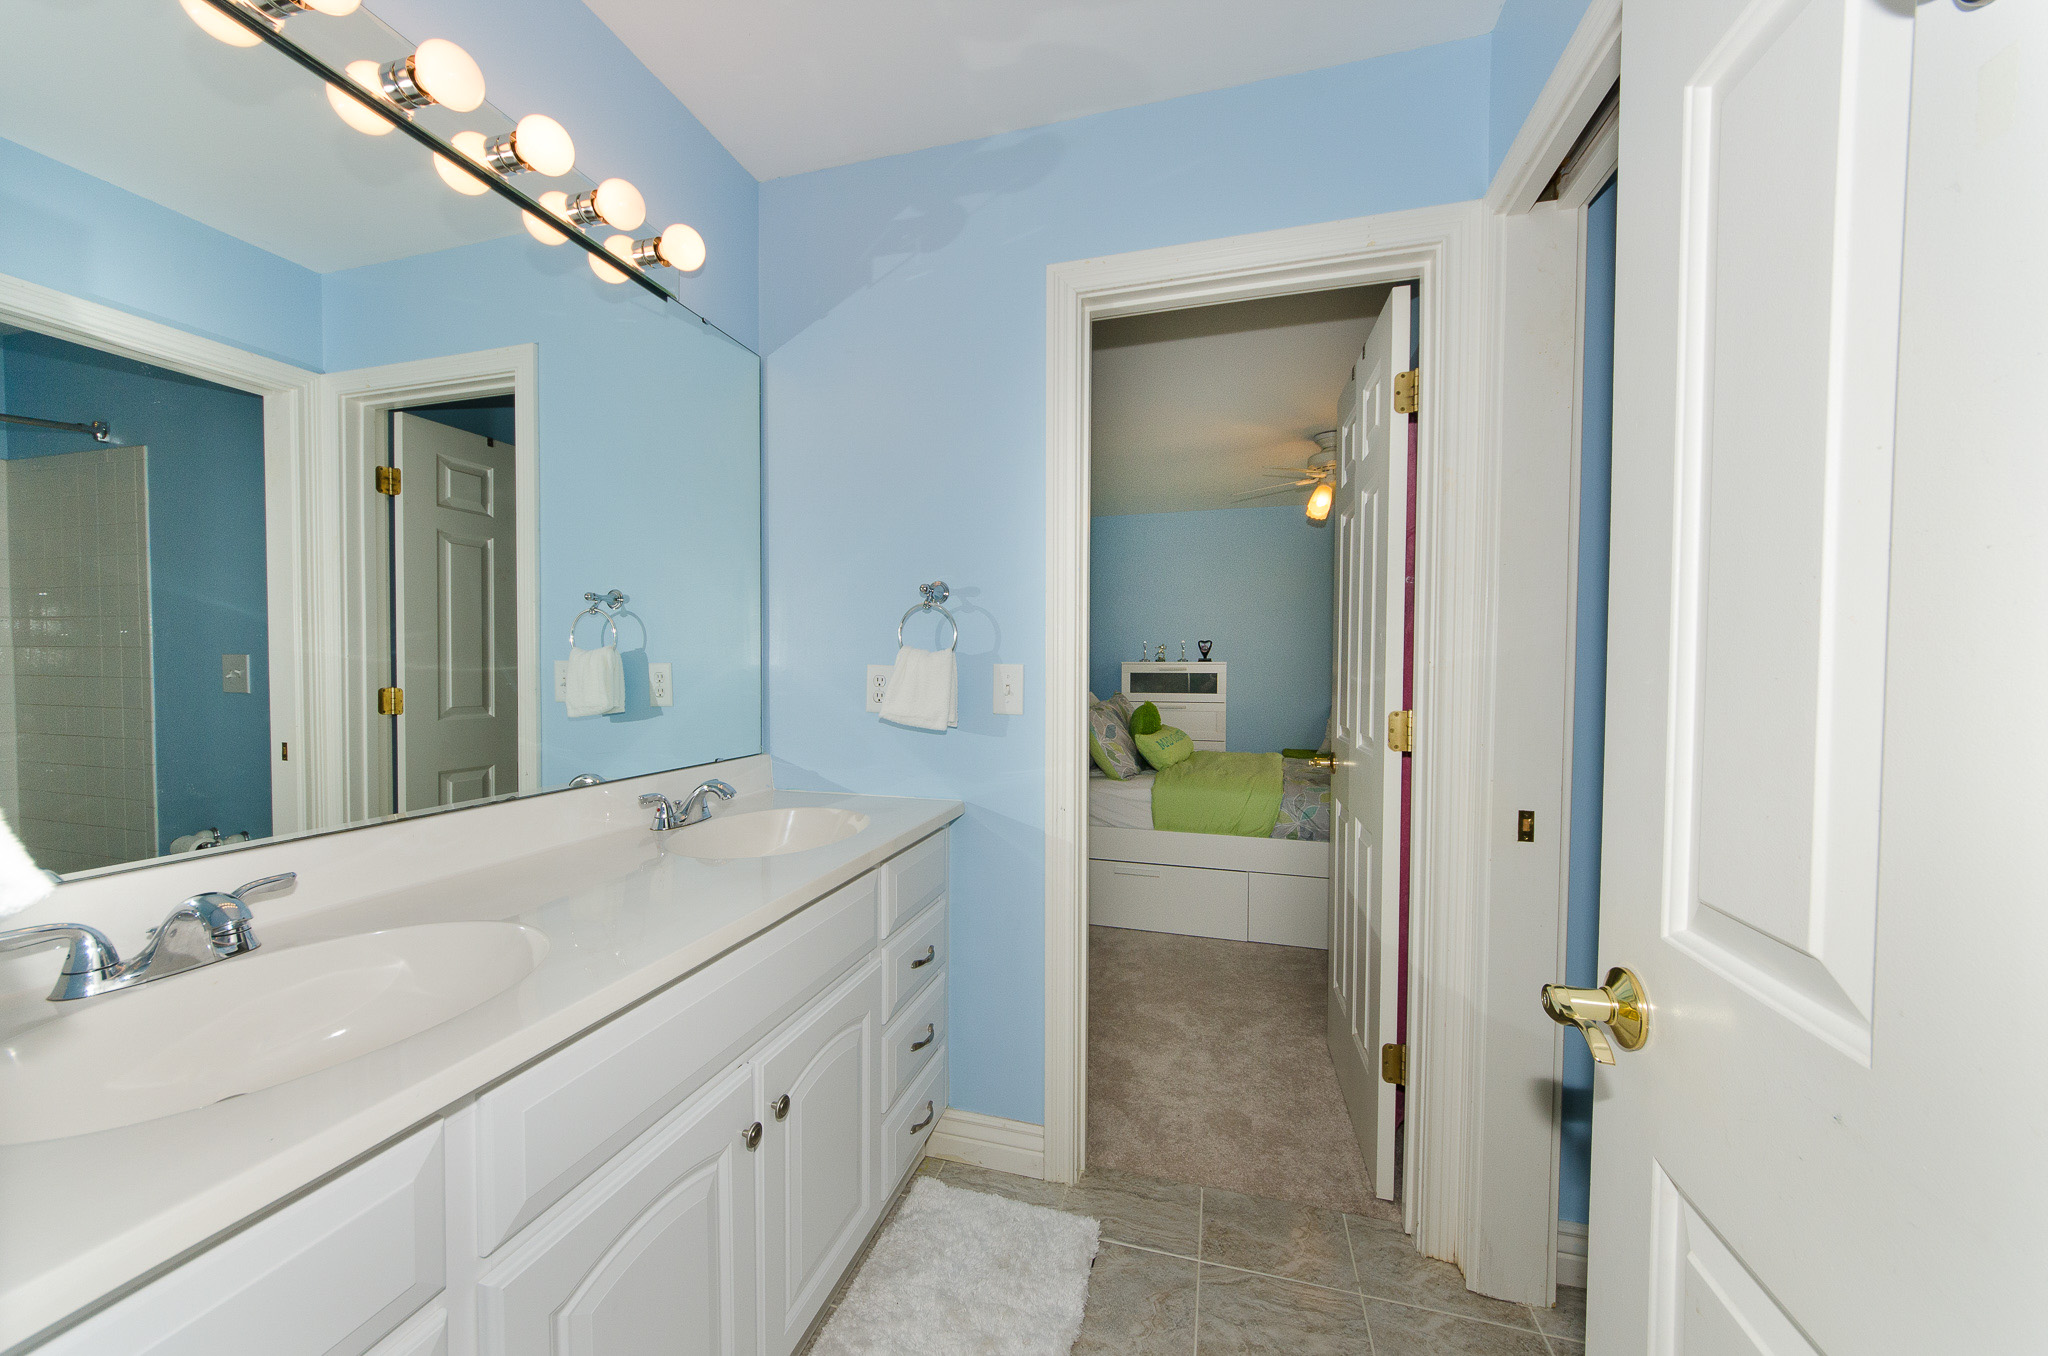 Jack and Jill bathroom between bedrooms #2 and #3